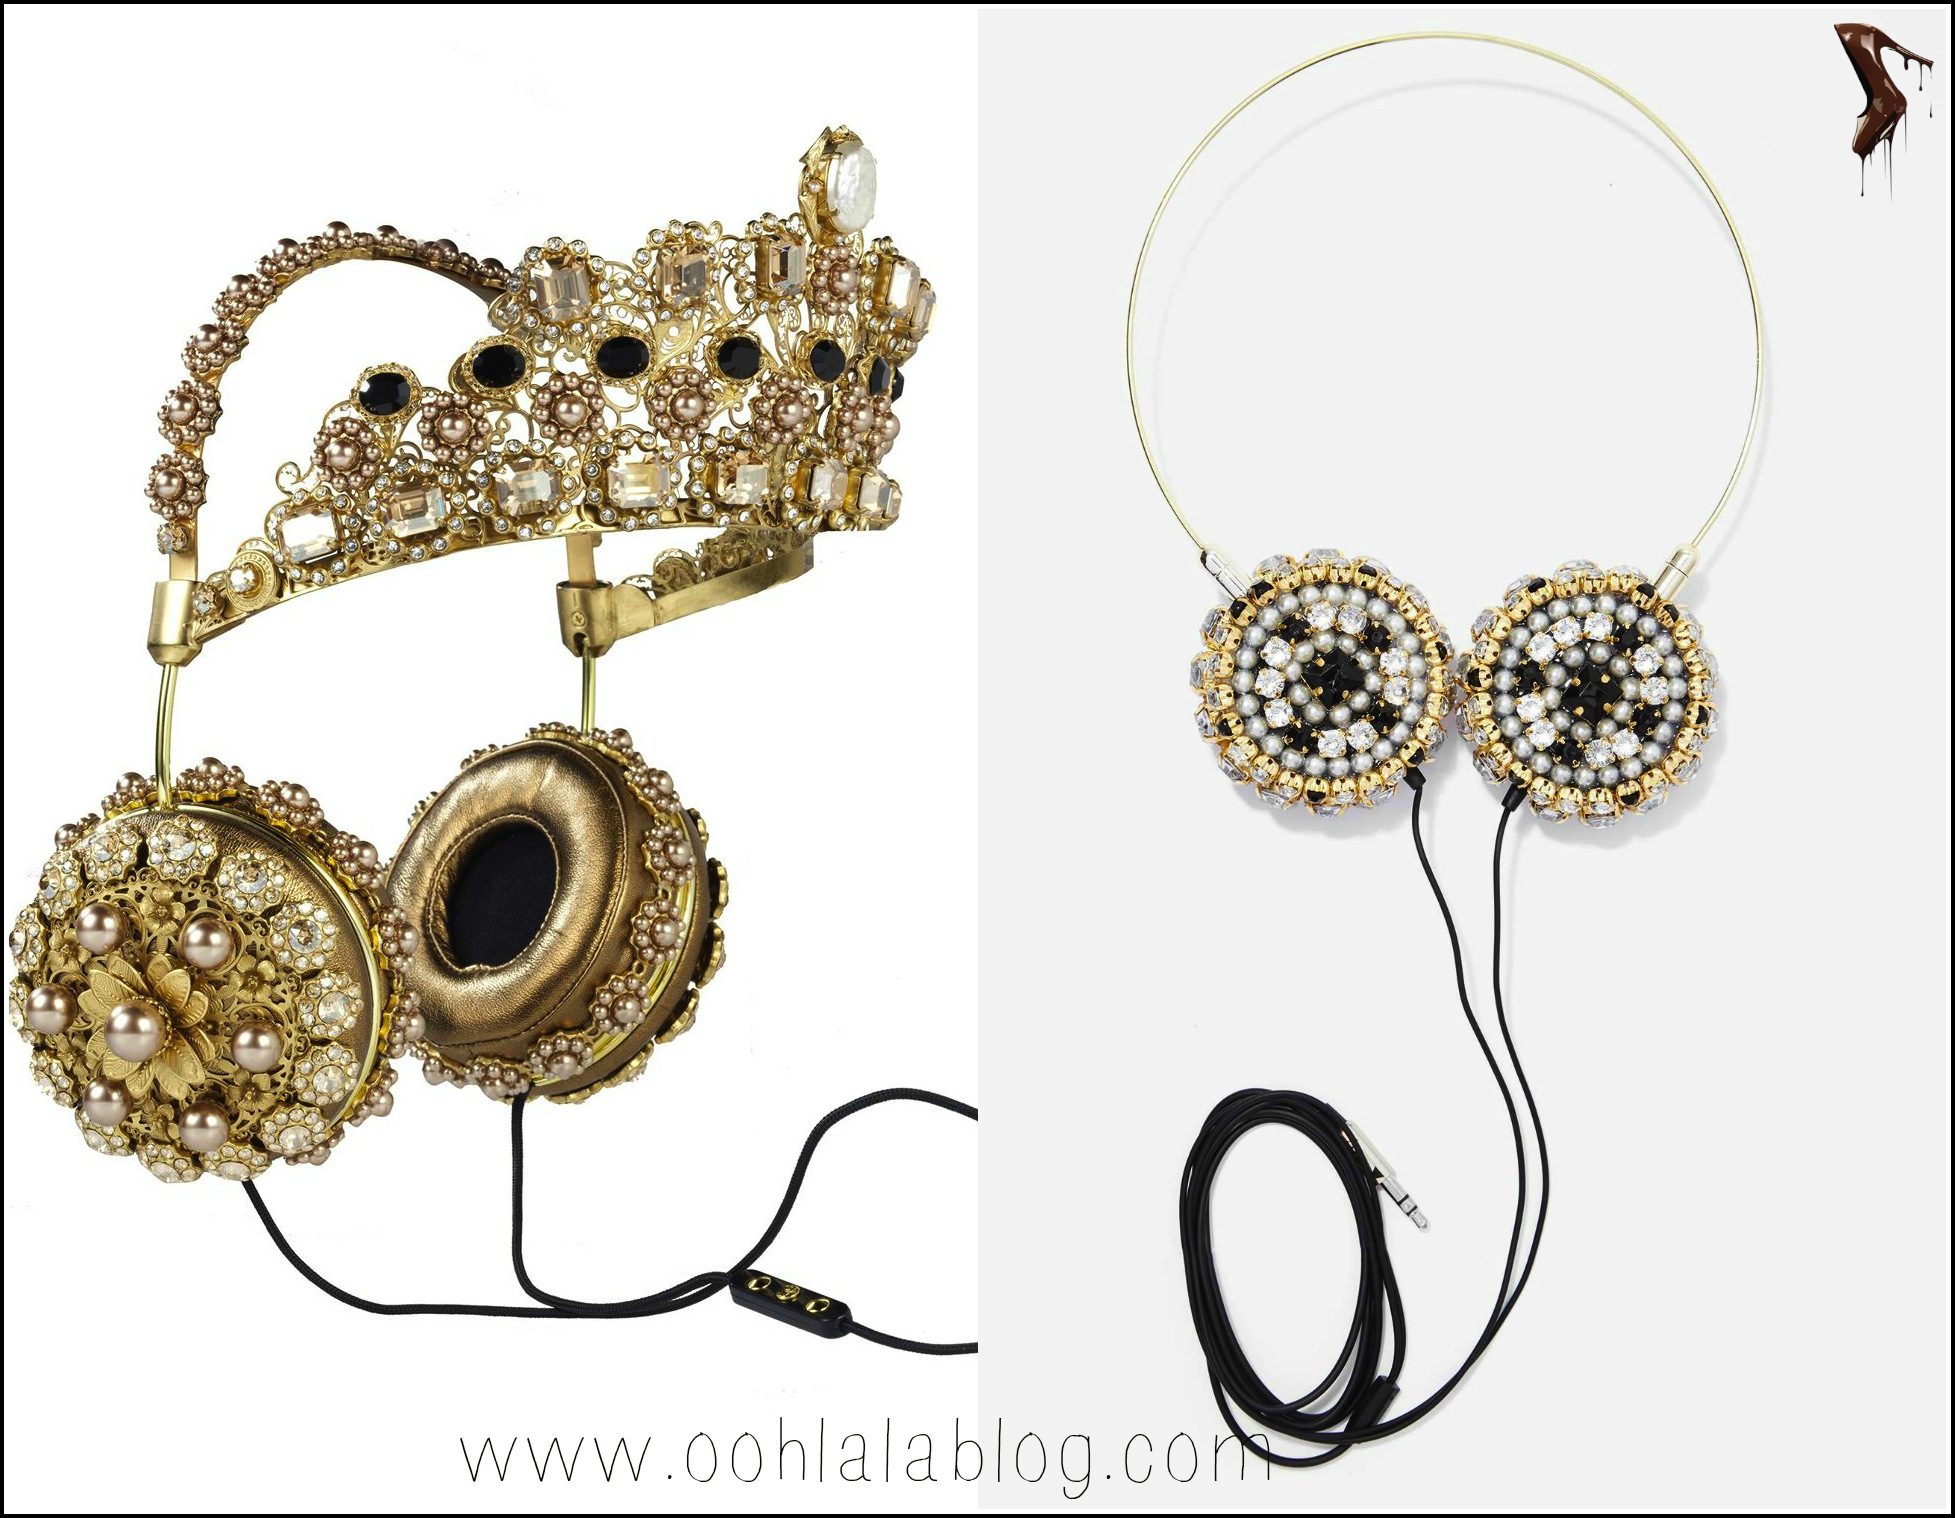 1Rihanna-Instagam-FRENDS-Dolce-Gabbana-Embellished-Leather Headphones-with Gold-Crown-13